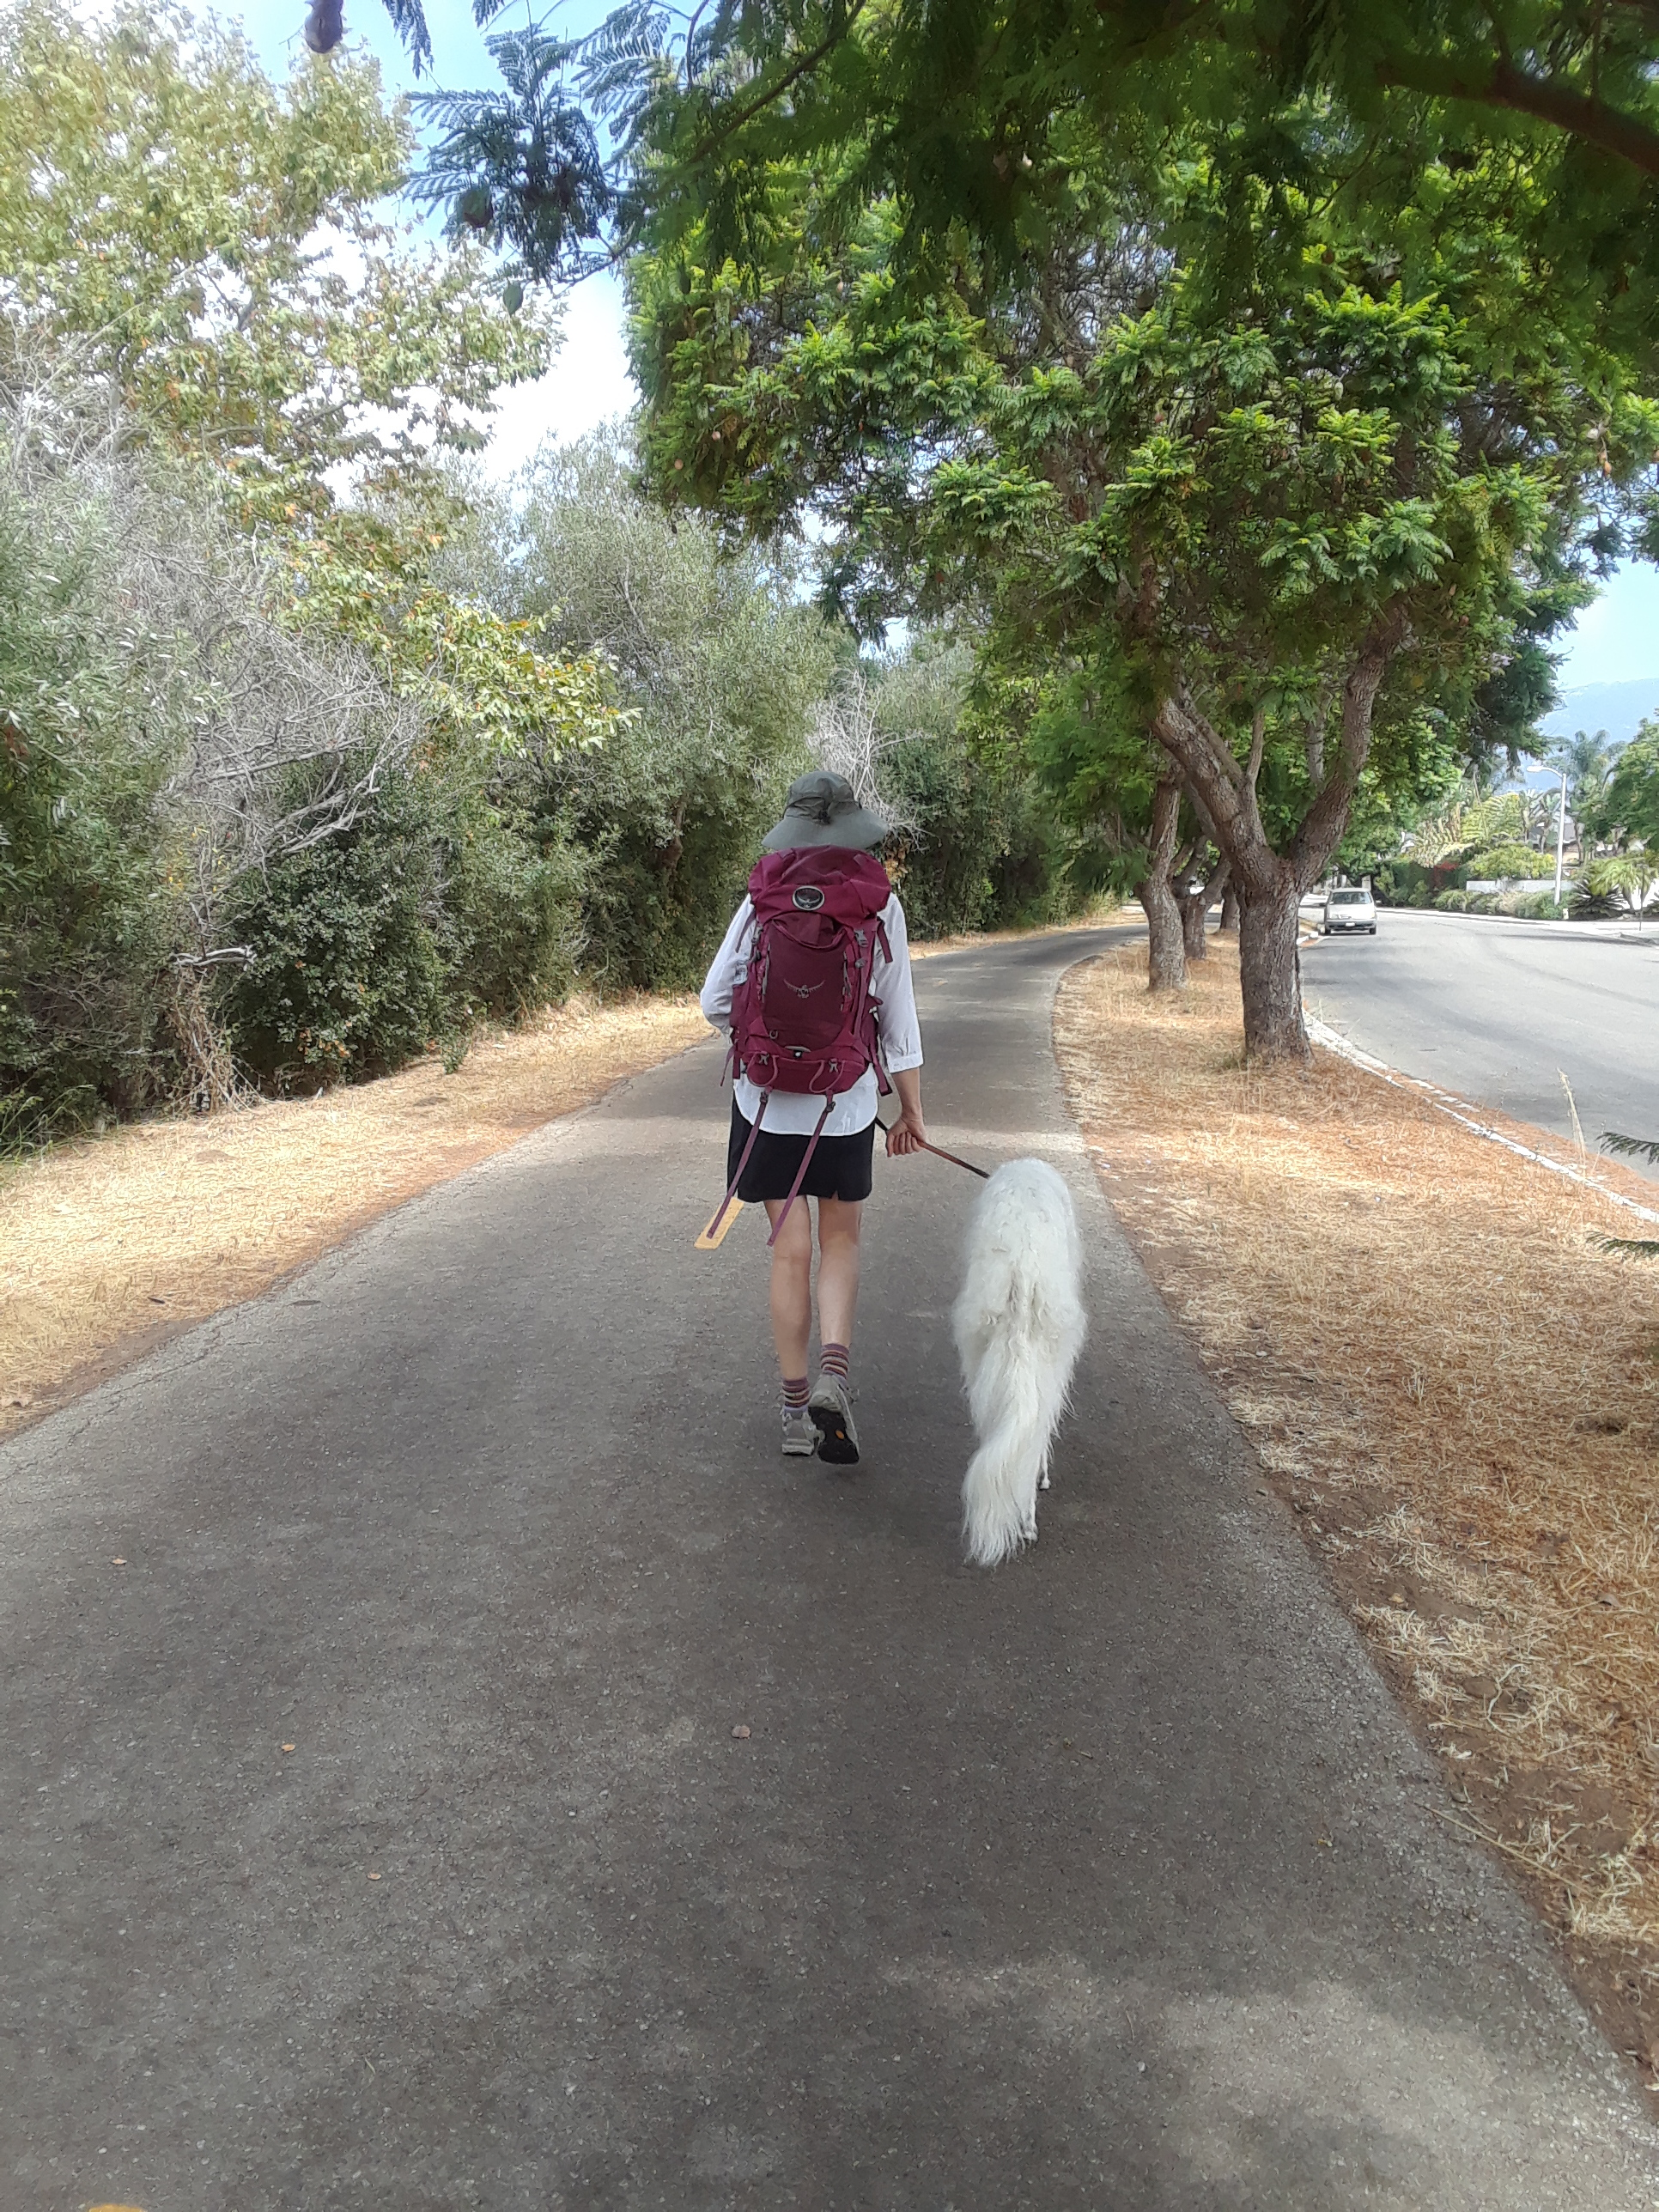 From Santa Barbara to Santiago. Training while on a walk with Keesa.